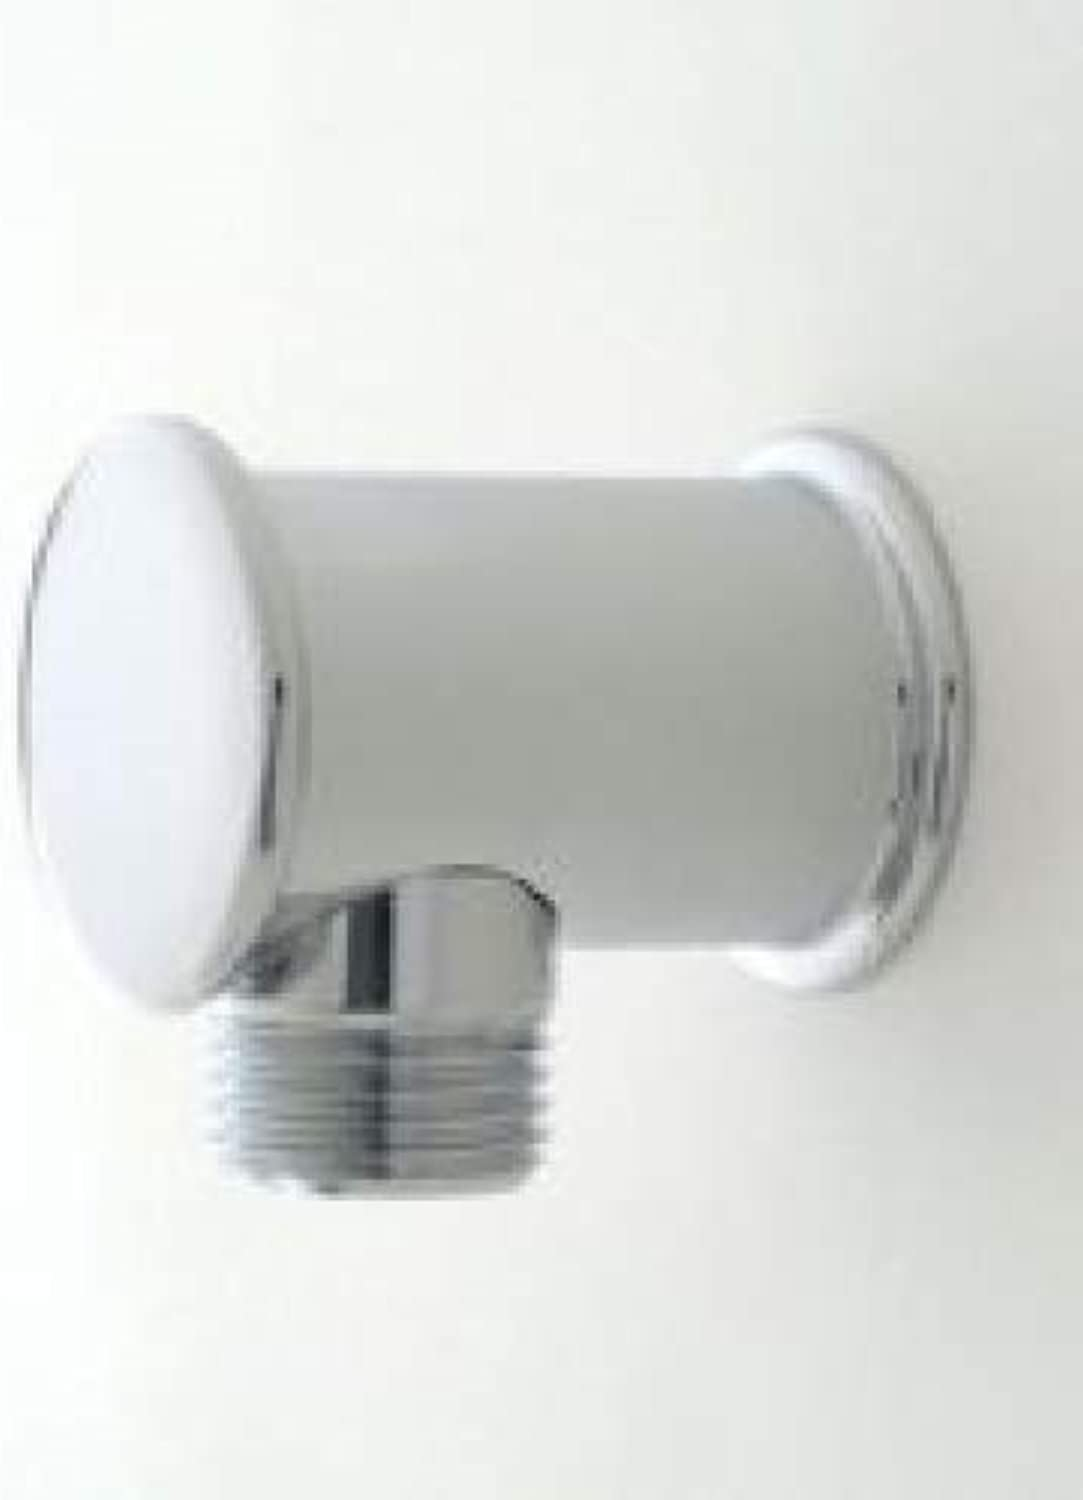 Jaclo 6485-SC Deluxe Hand Shower Wall-Mounted 1 2  Male x 1 2  Female Supply Elbow, Satin Chrome